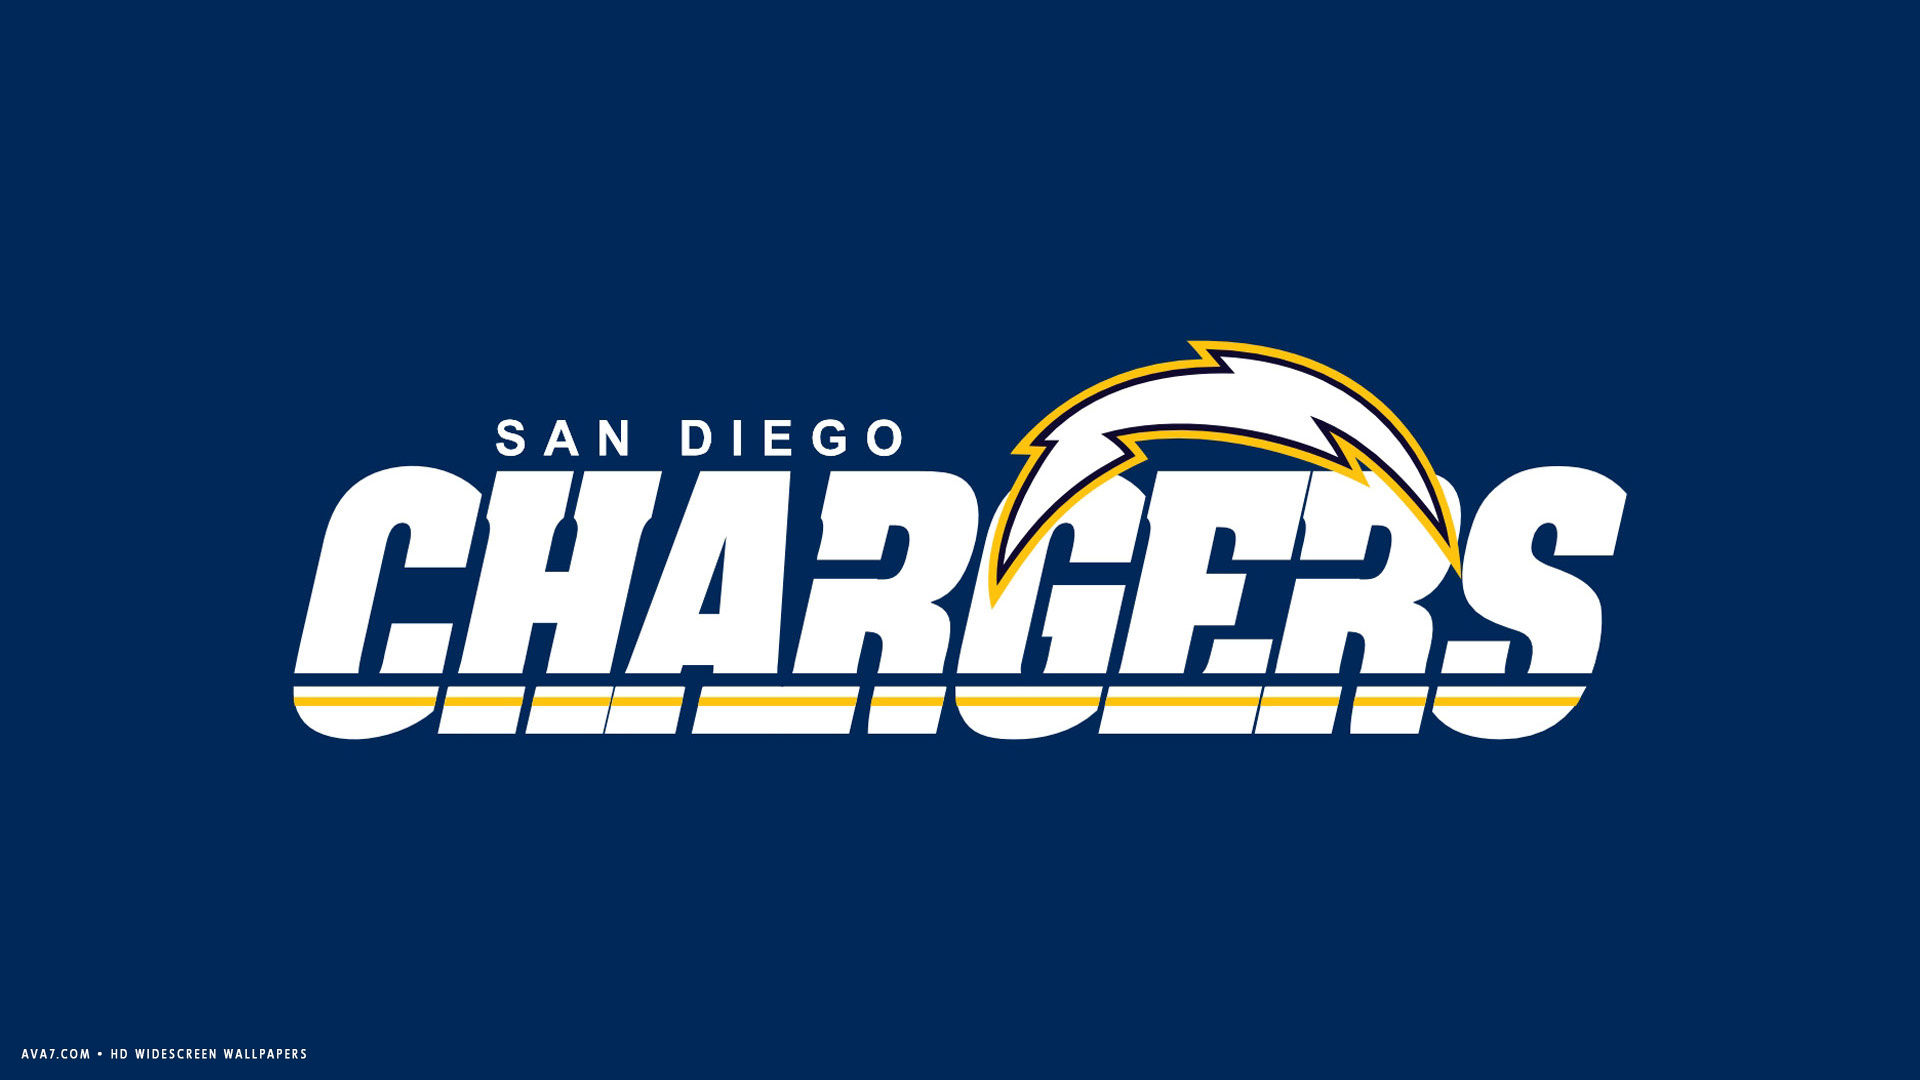 san diego chargers 1920x1080 hd widescreen wallpaper